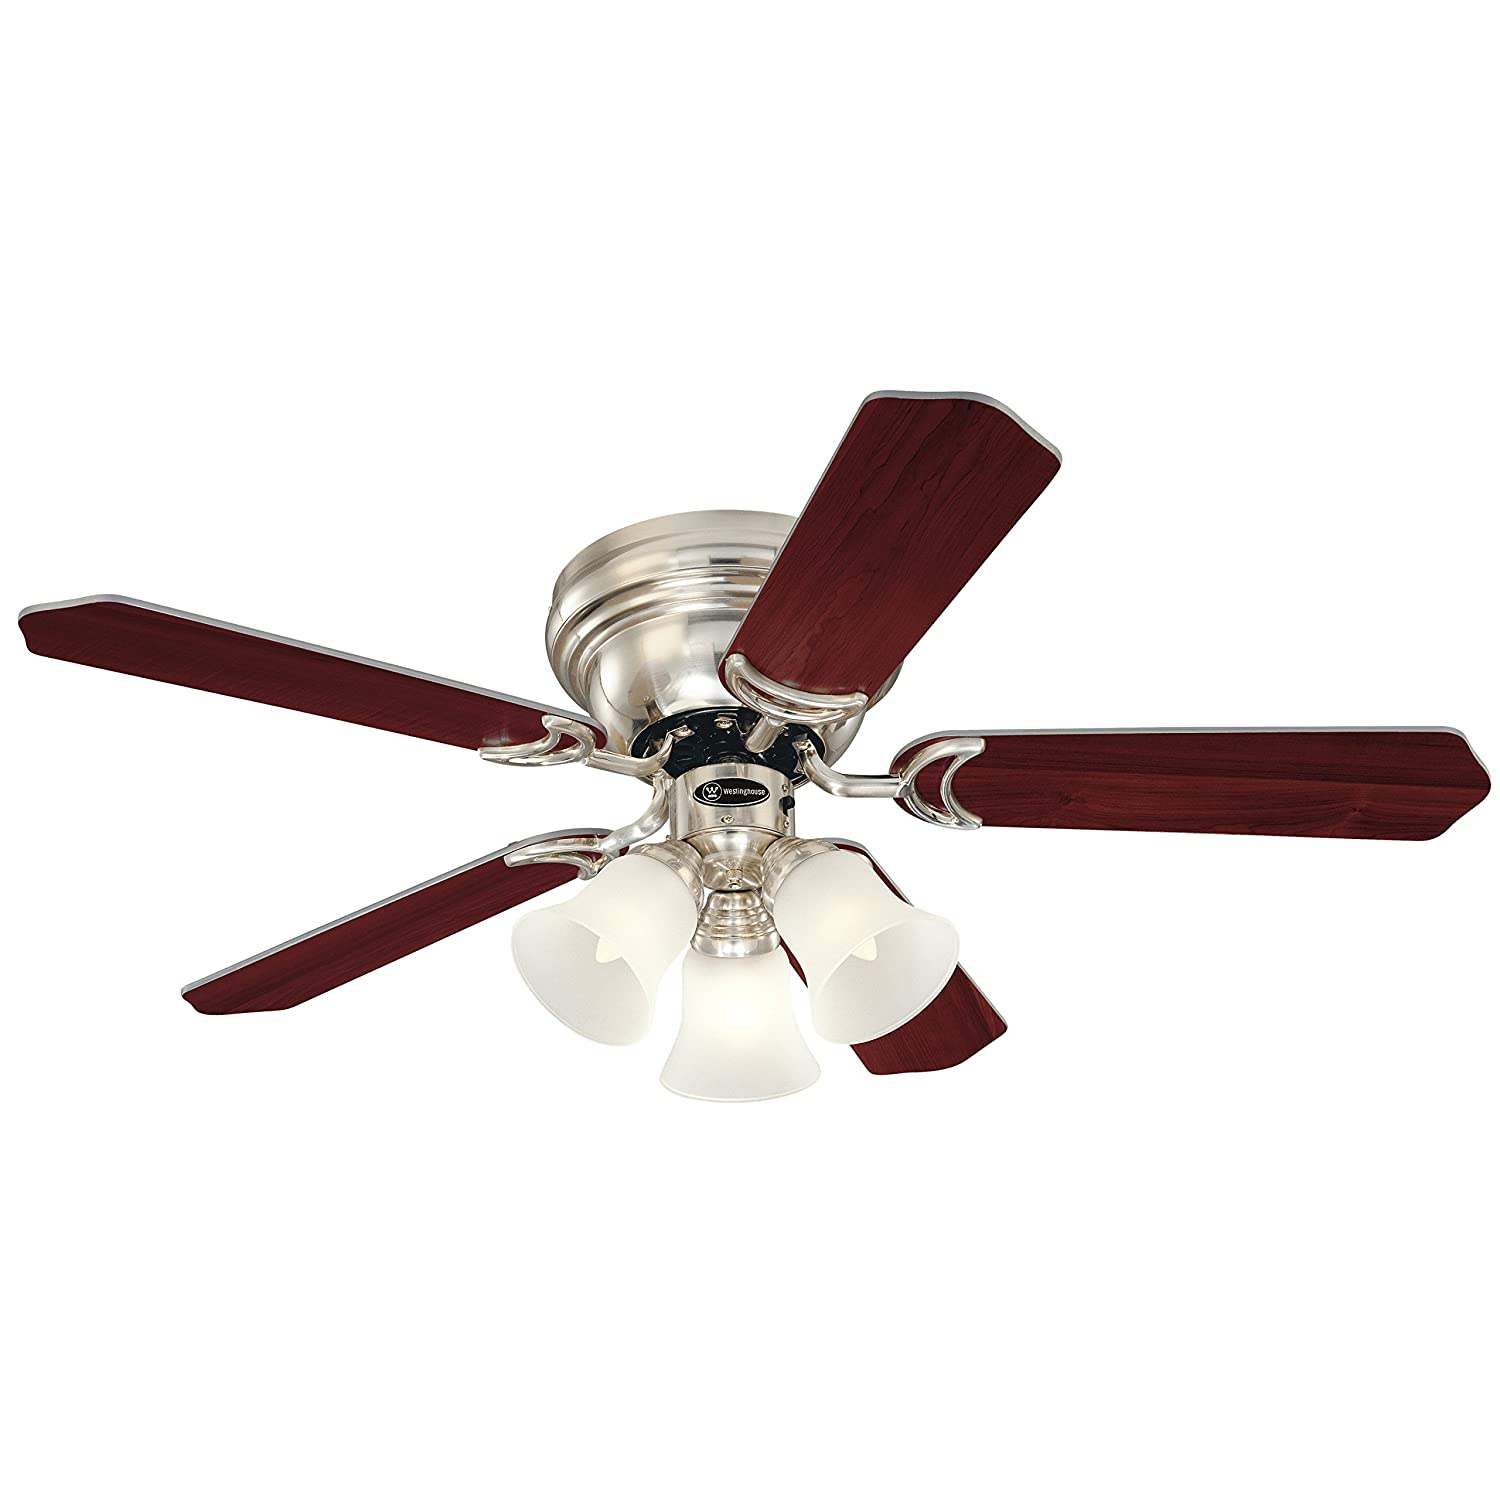 6 Best Ceiling Fans for Bedrooms Top Rated Bedroom Ceiling Fans